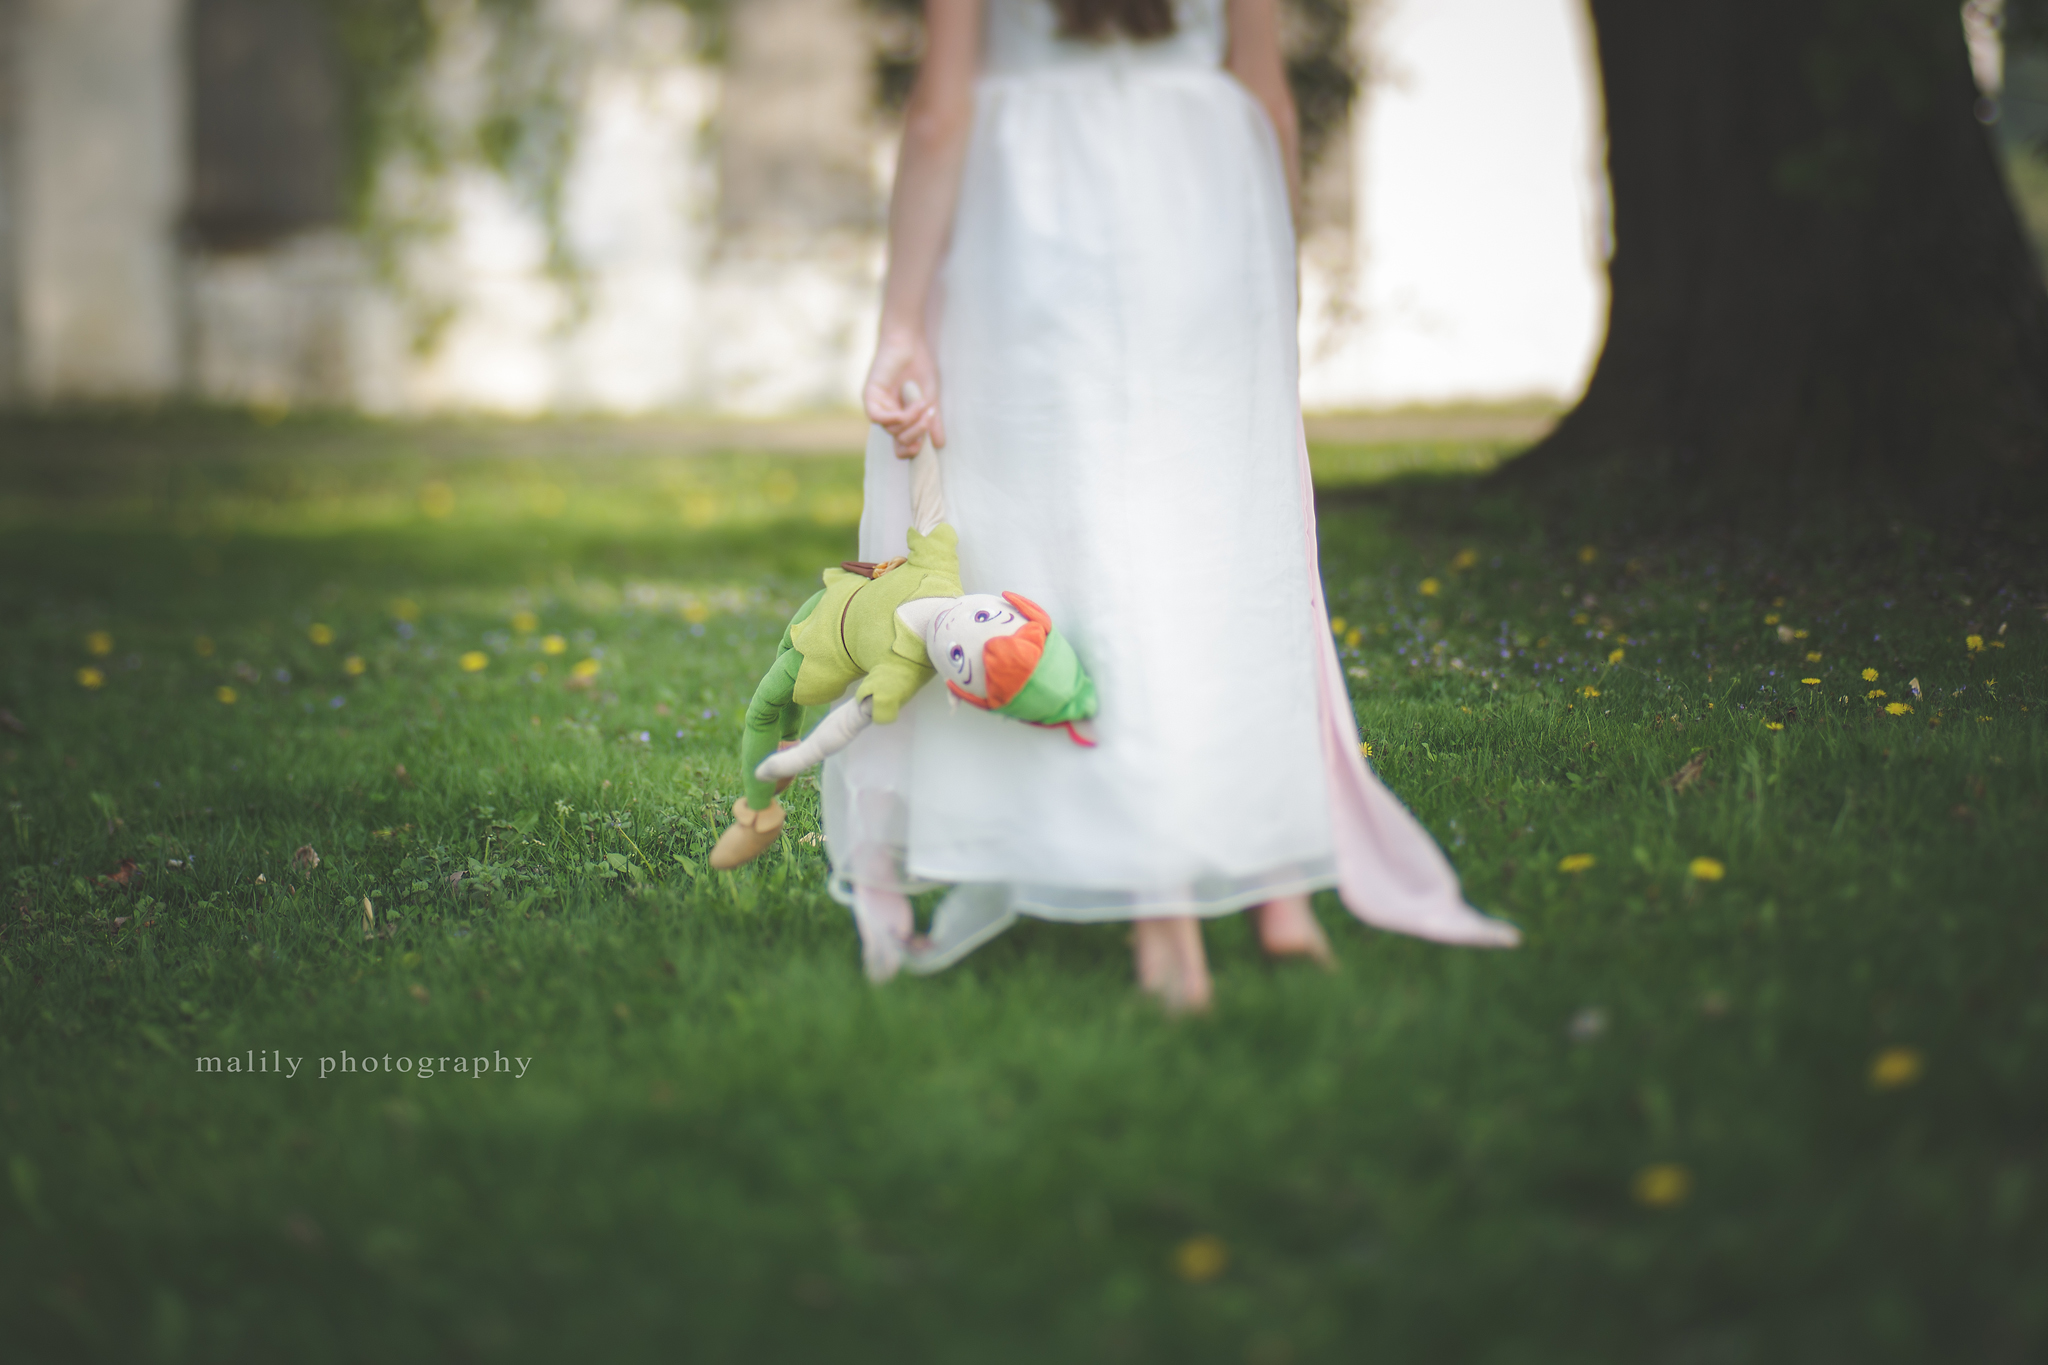 malily photography | girl with peter pan